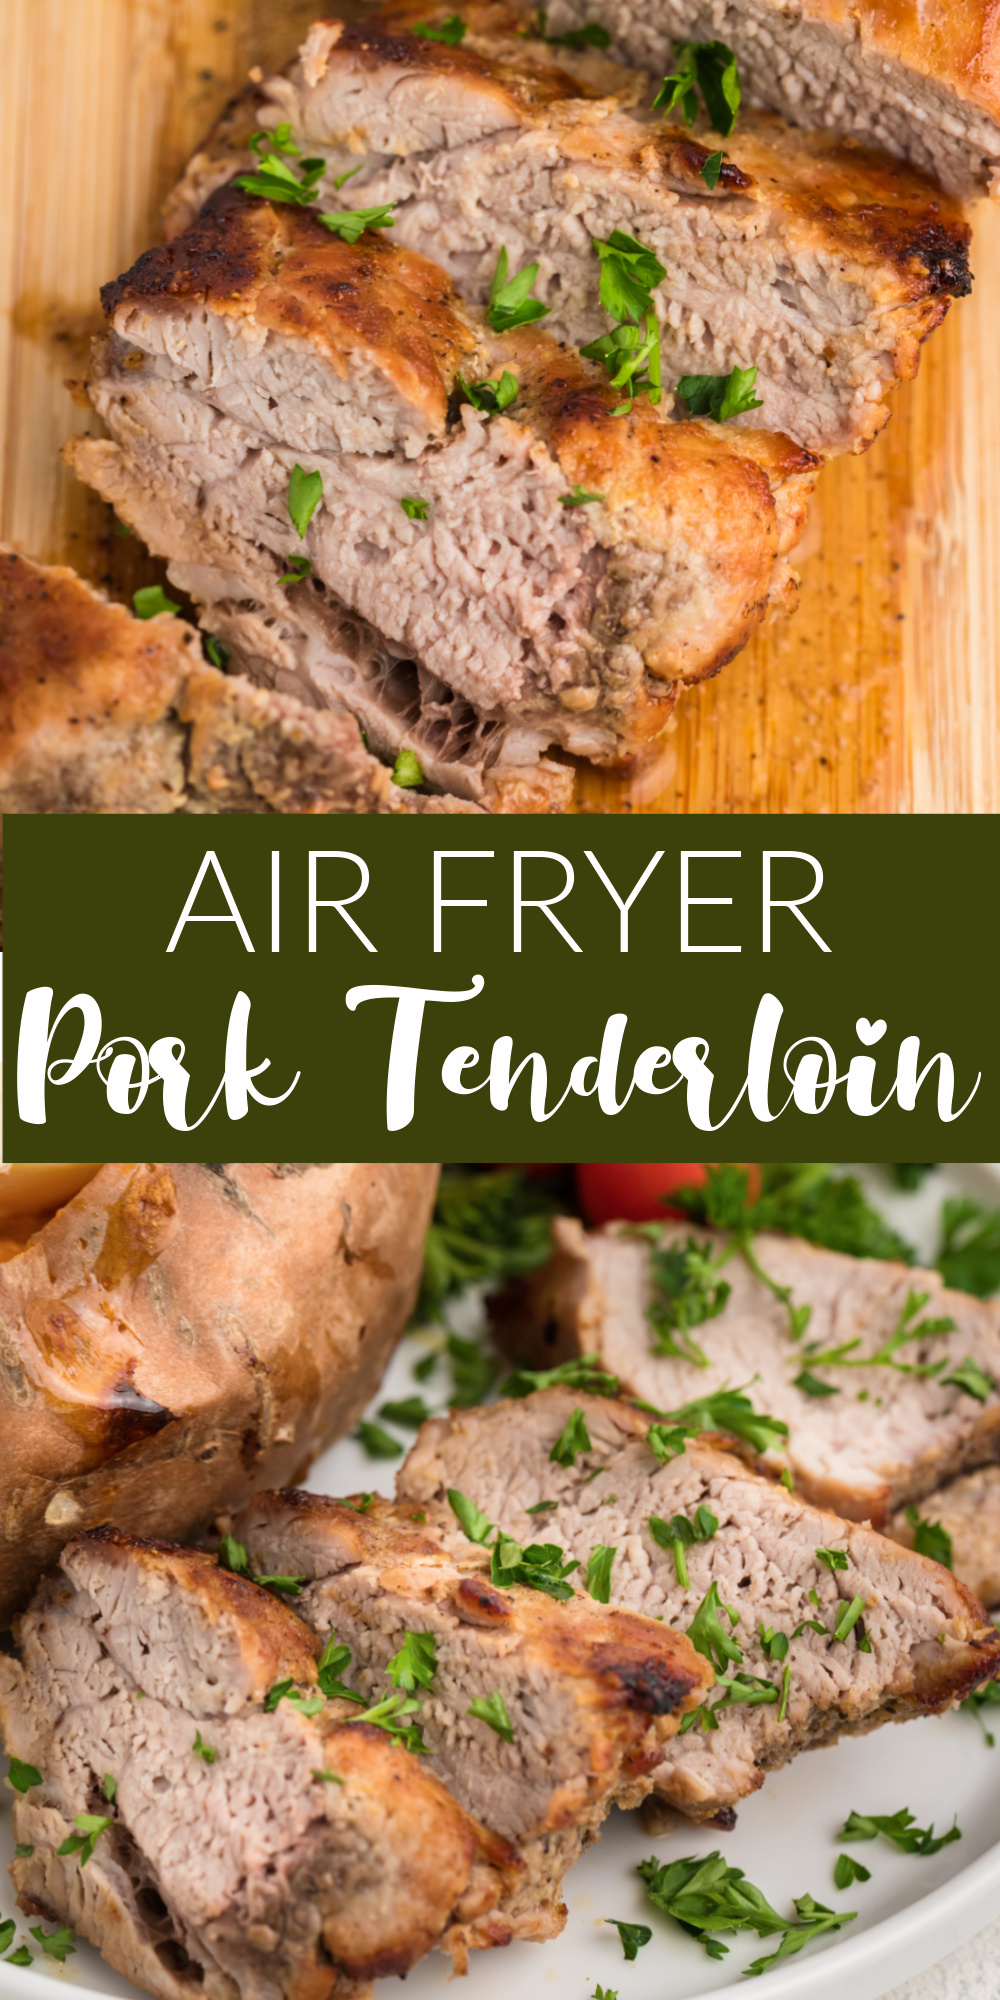 Air Fryer Pork Tenderloin is one of my favorite low carb dinner recipes. You can make this air fryer recipe from start to finish in just 20 minutes. You just need a handful of seasonings and a little olive oil for the easiest dinner, ever!